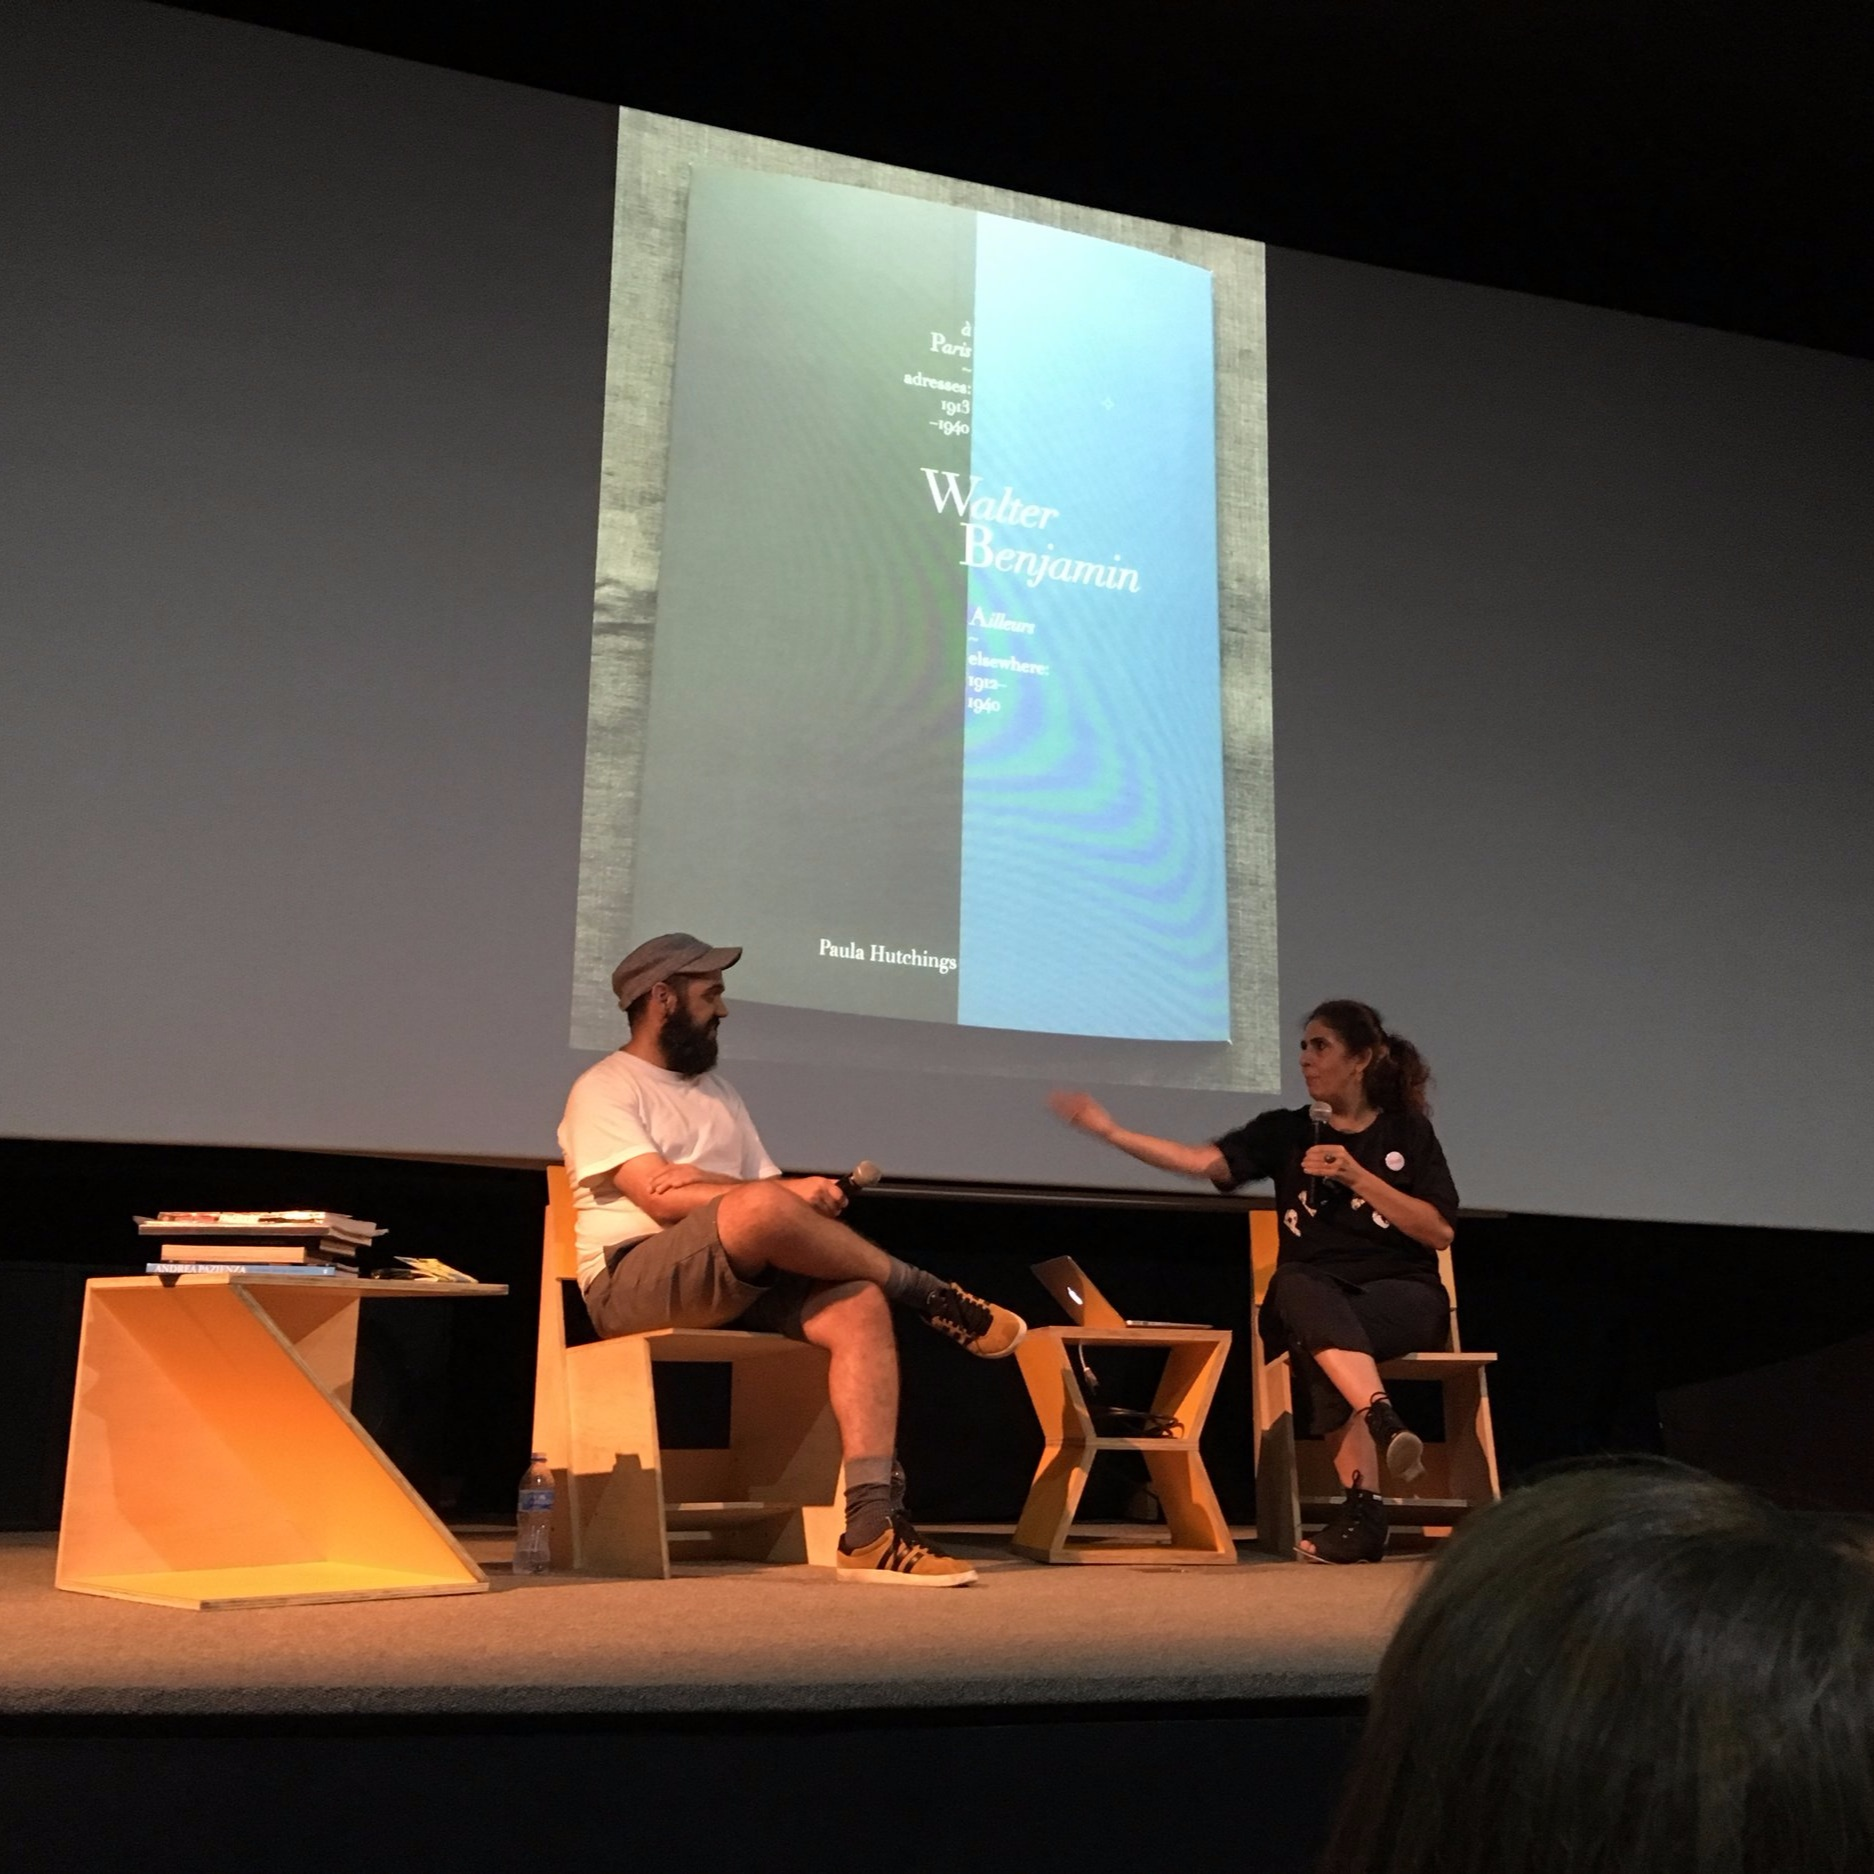 - WB: à Paris / Ailleurs debuted at Feira Plana, the annual international Art Book Fair in São Paulo, in connection with «DesApê», the rare art book collection of Rita Barbosa. (Here presenting WB folio in her interview at the Cinemateca Brasileira in March, 2018)